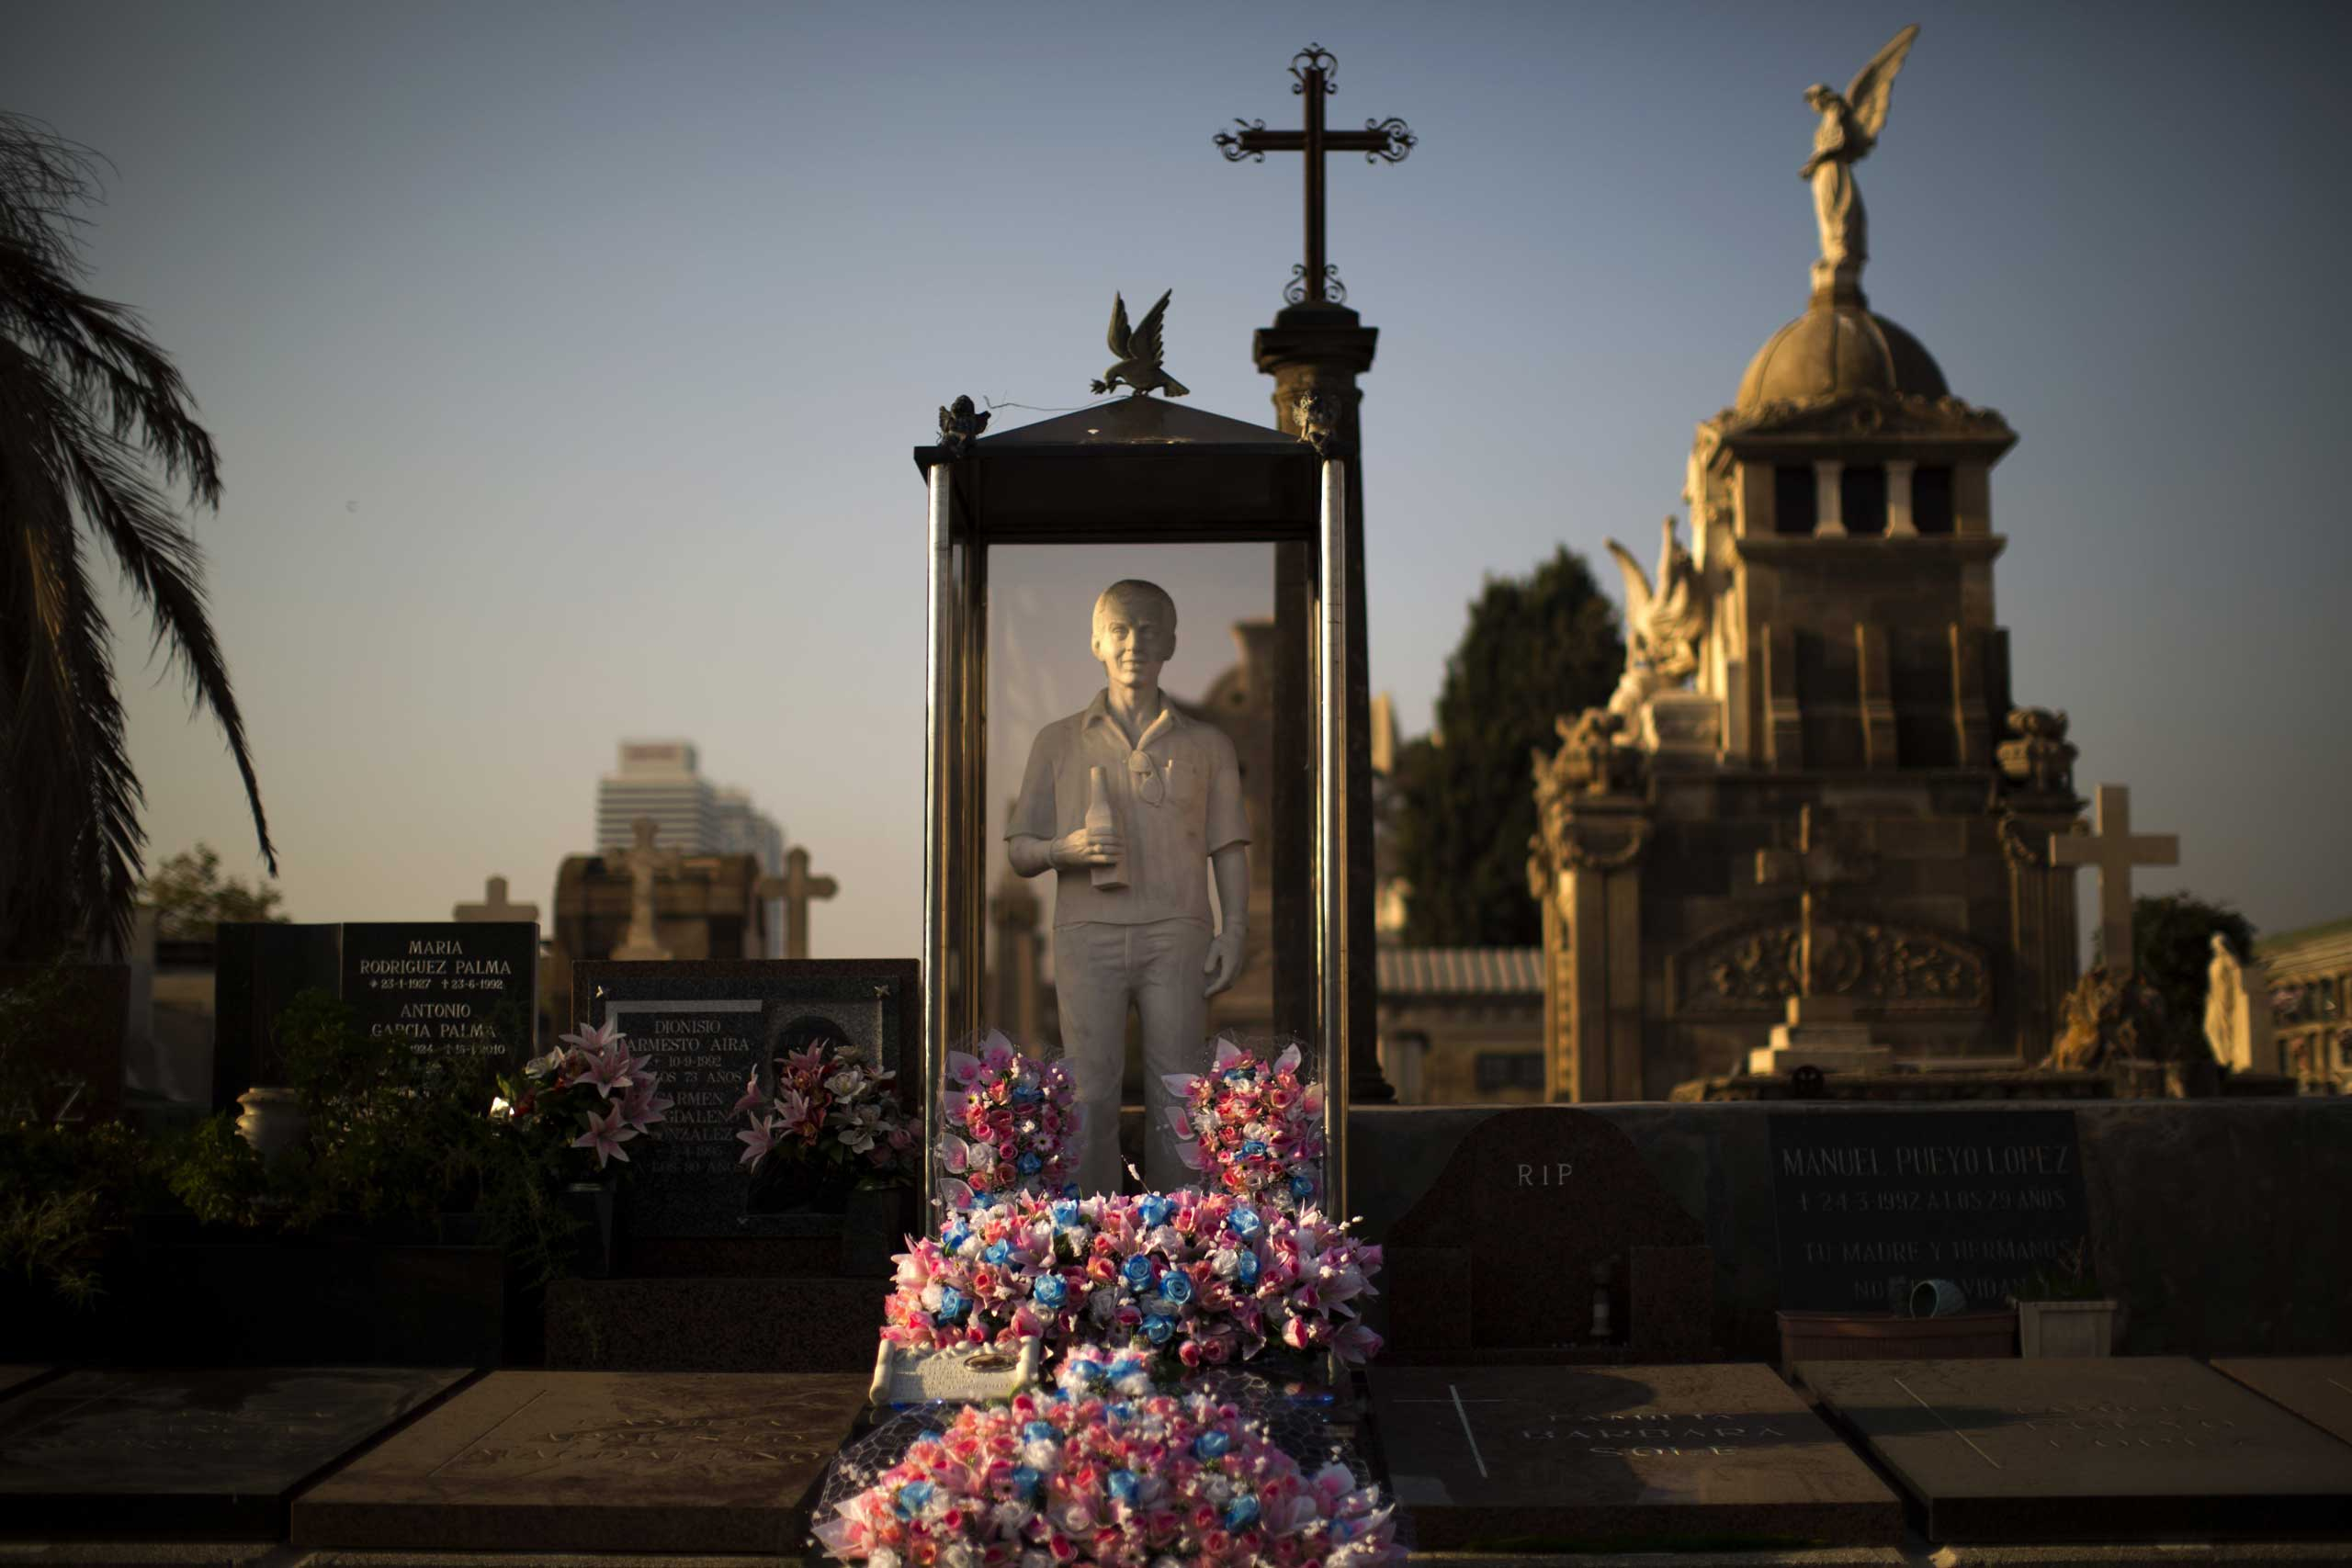 Nov. 1, 2014. A tomb is decorated with flowers in Barcelona during All Saints Day, a Catholic holiday to reflect on the saints and deceased relatives.